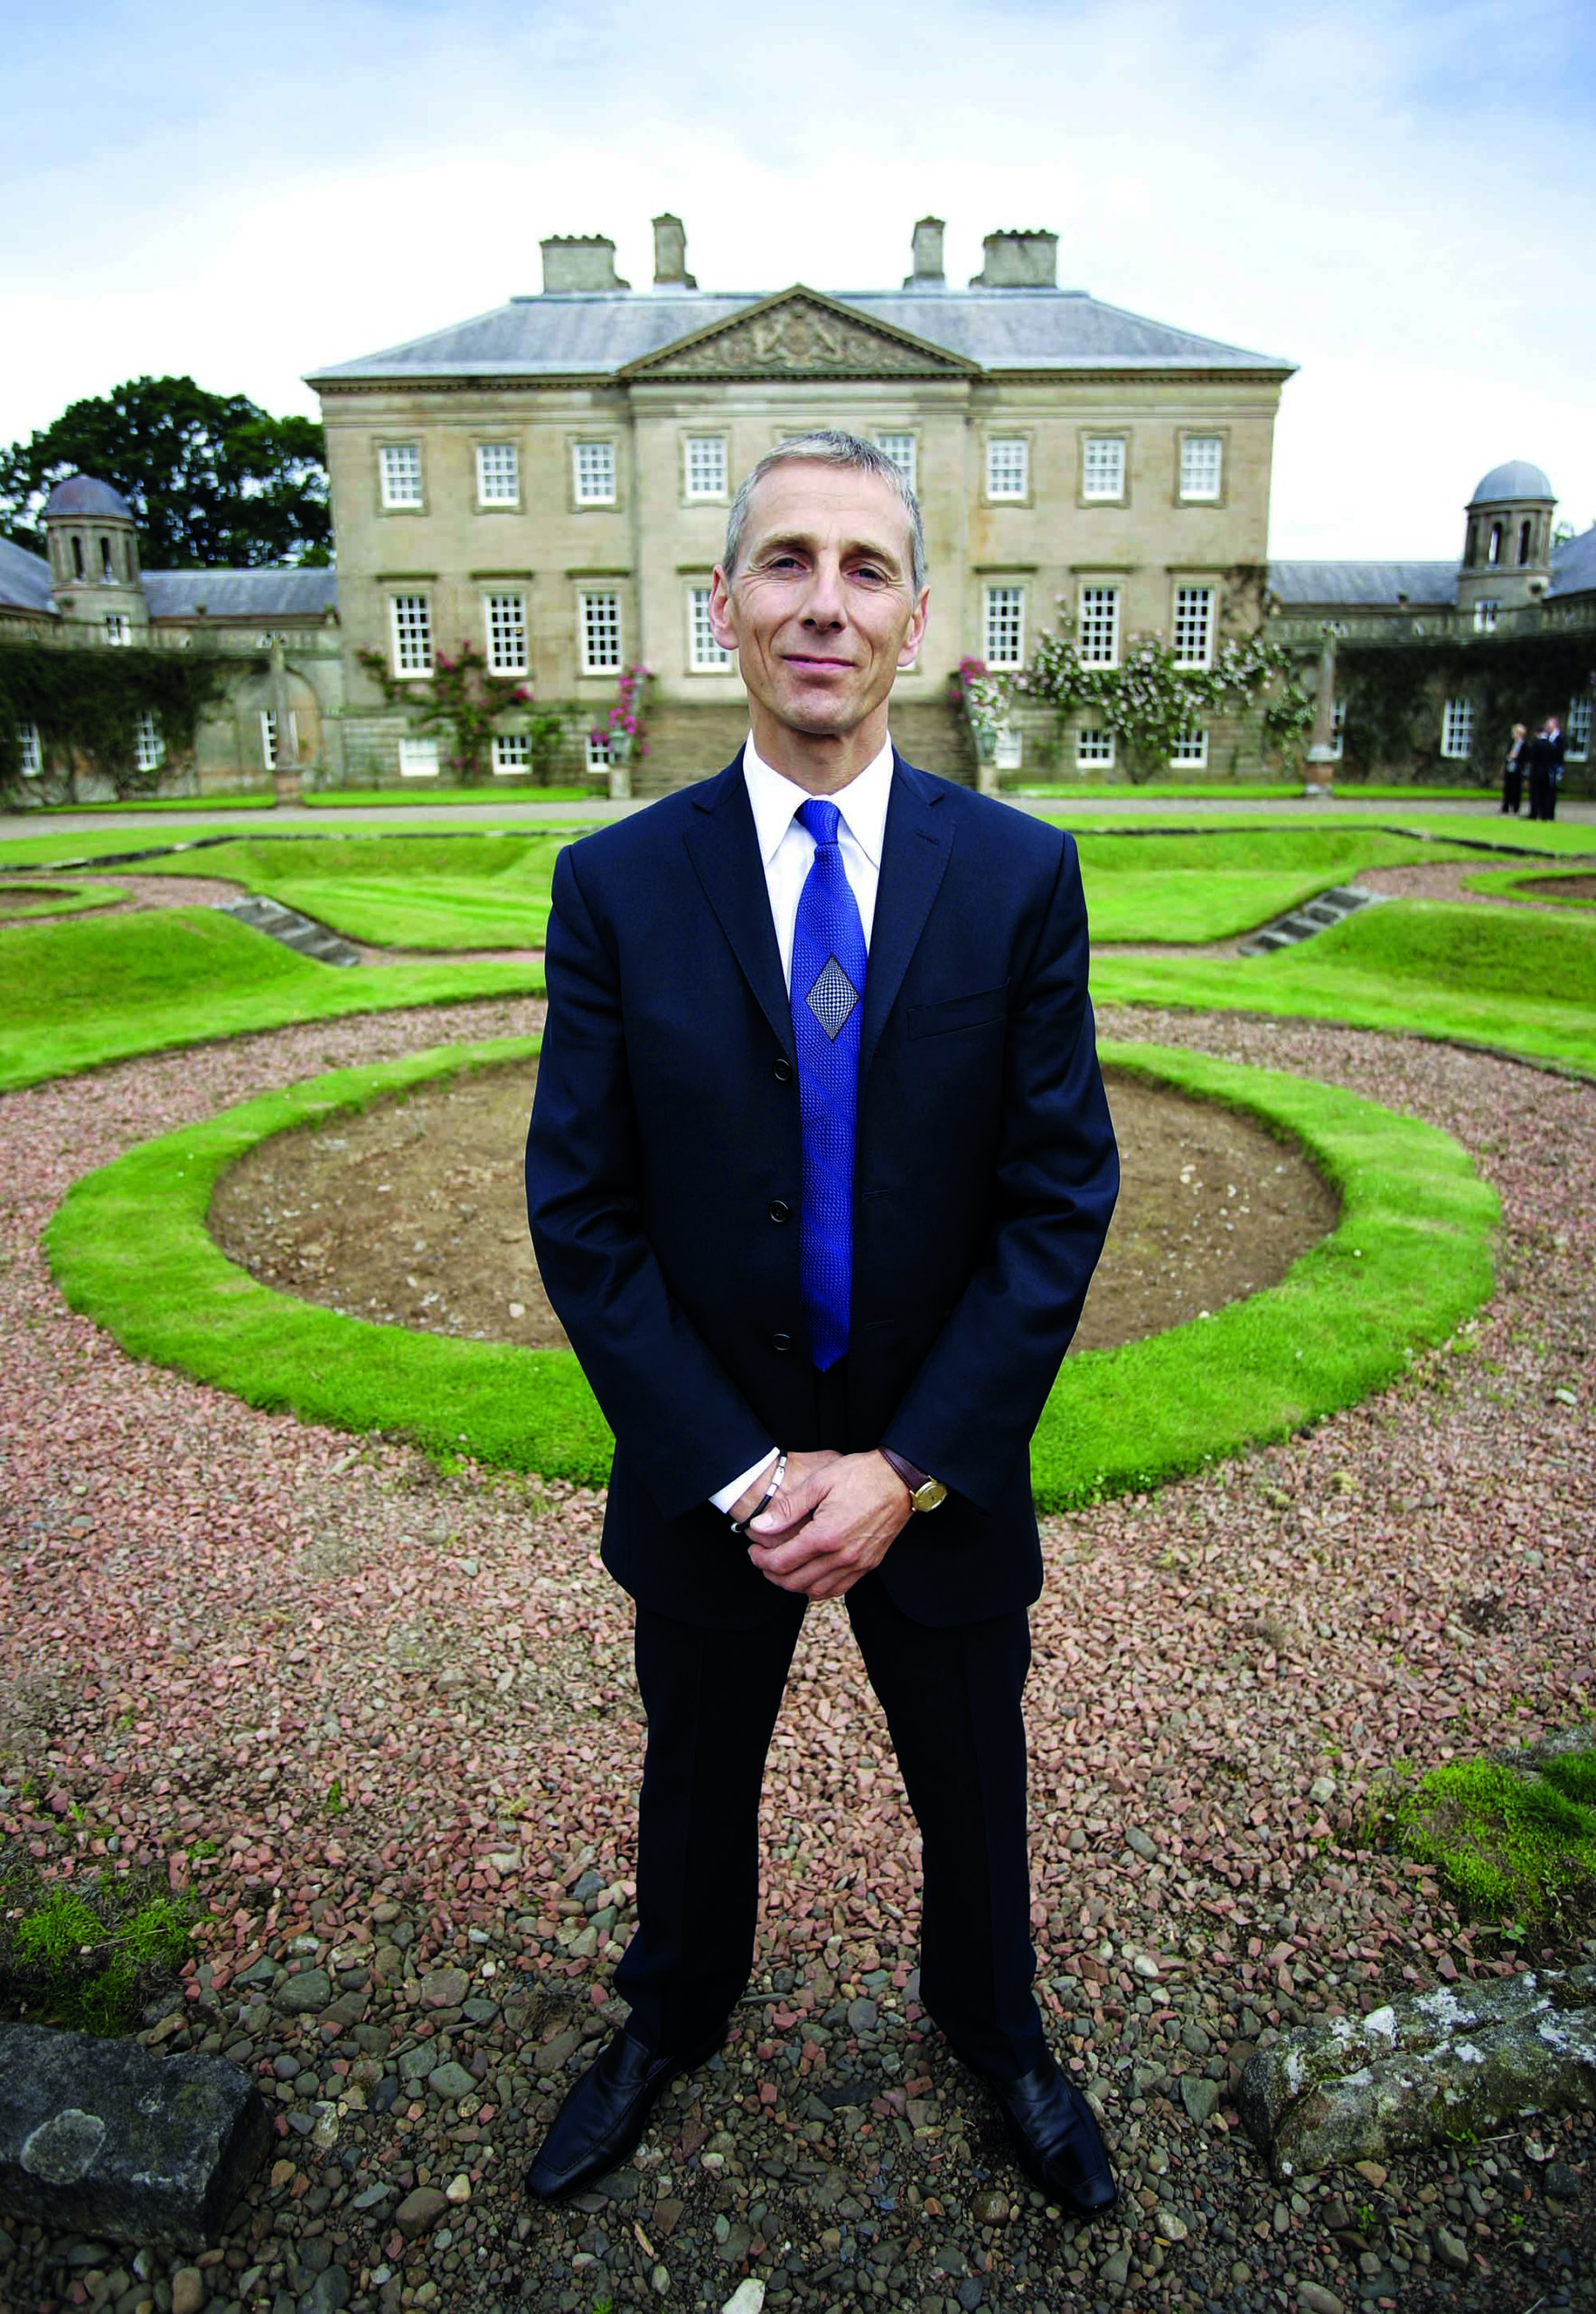 John-Bute-photographed-in-2007-at-Dumfries-House